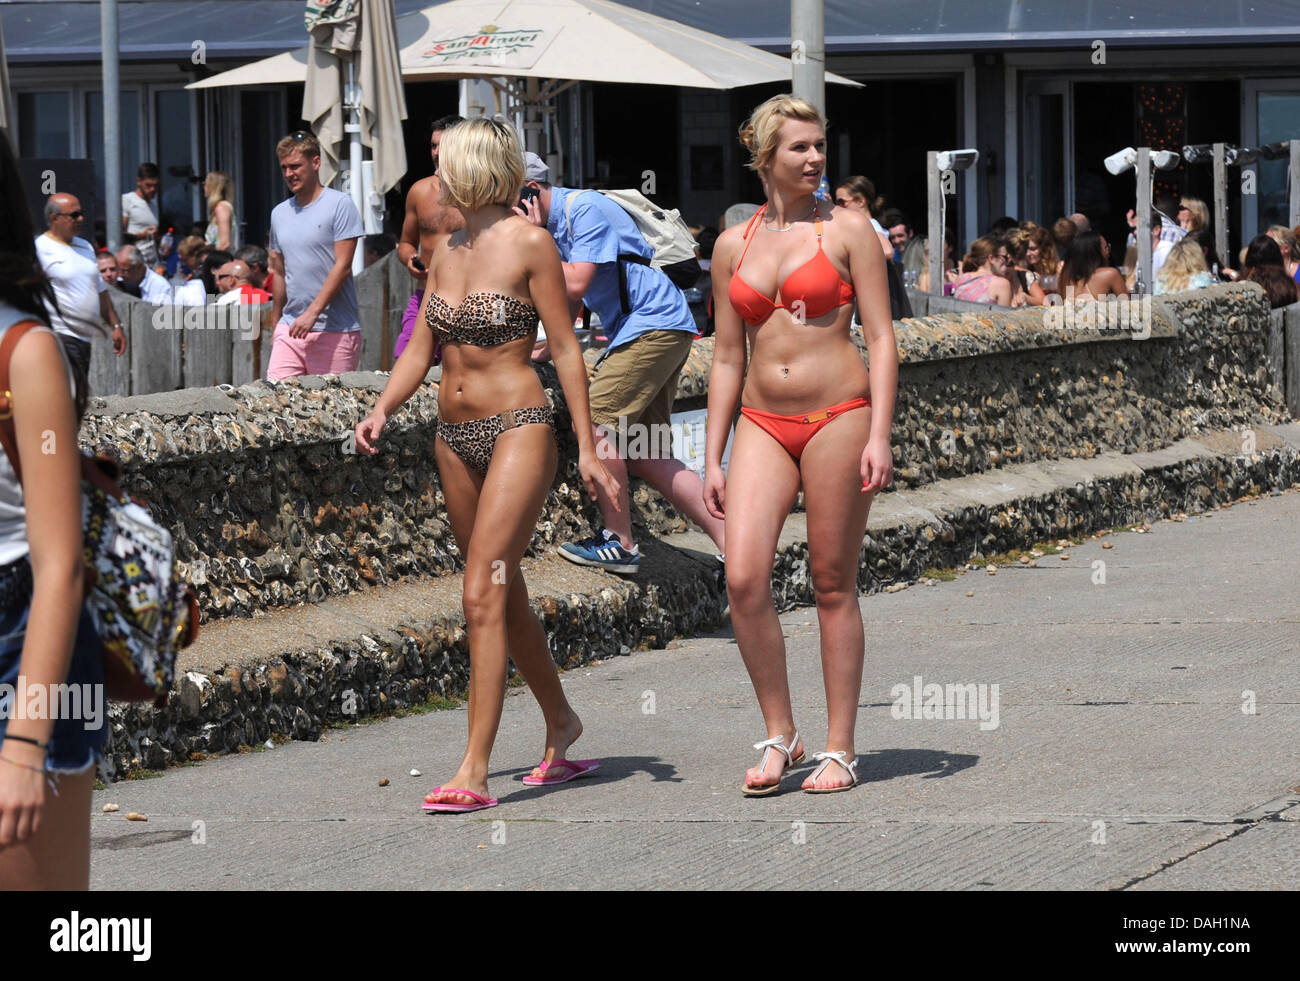 Brighton UK 13 July 2013 - Young women in bikinis on Brighton seafront today as the heatwave in Britain continued Stock Photo